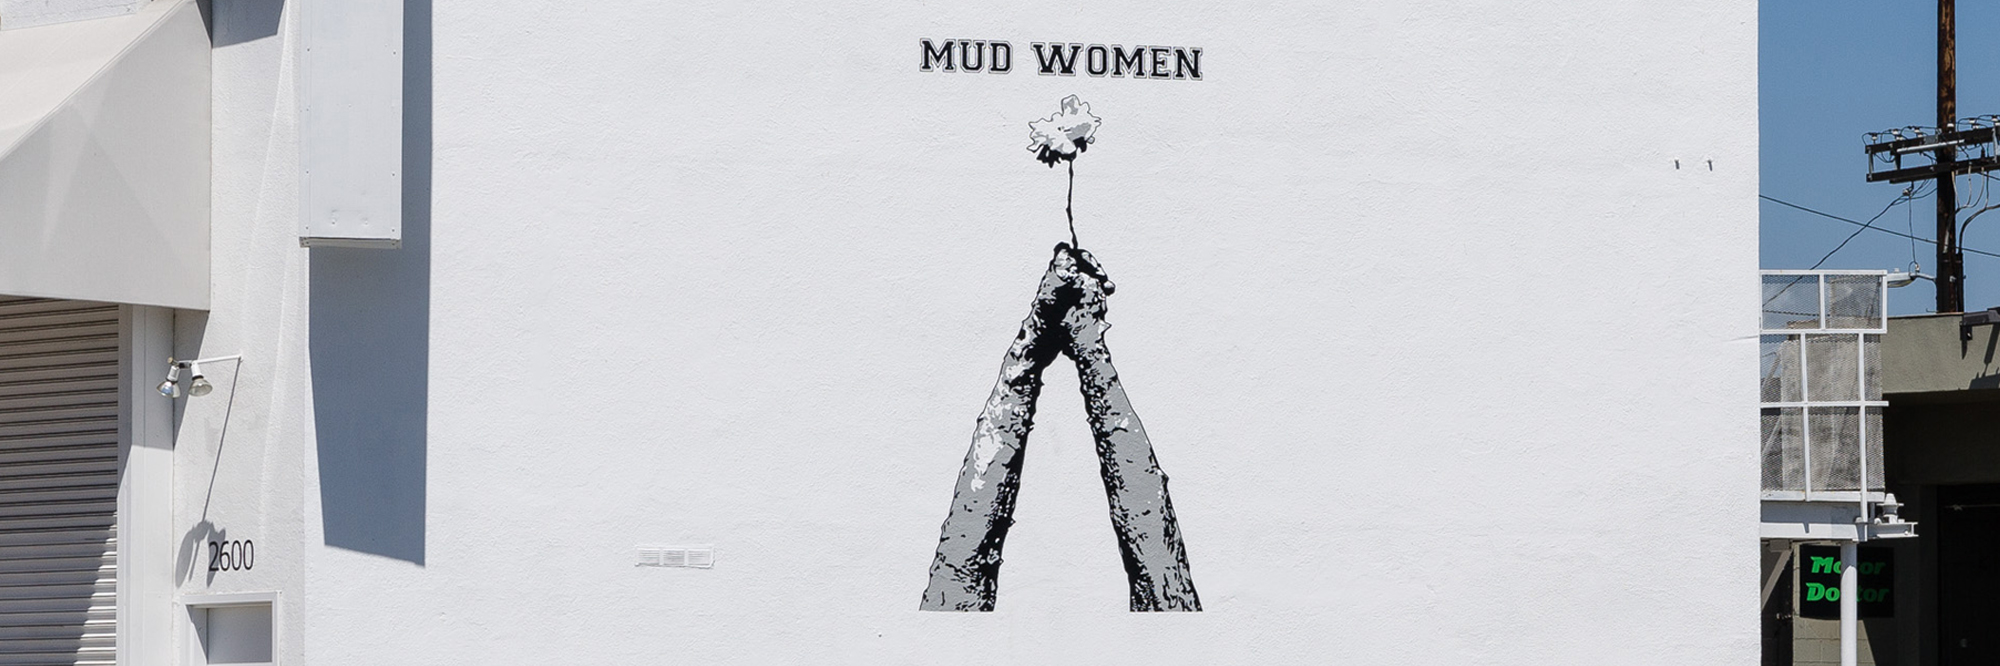 MUD WOMAN     Fay Ray   June 13 - August 22, 2015    press release